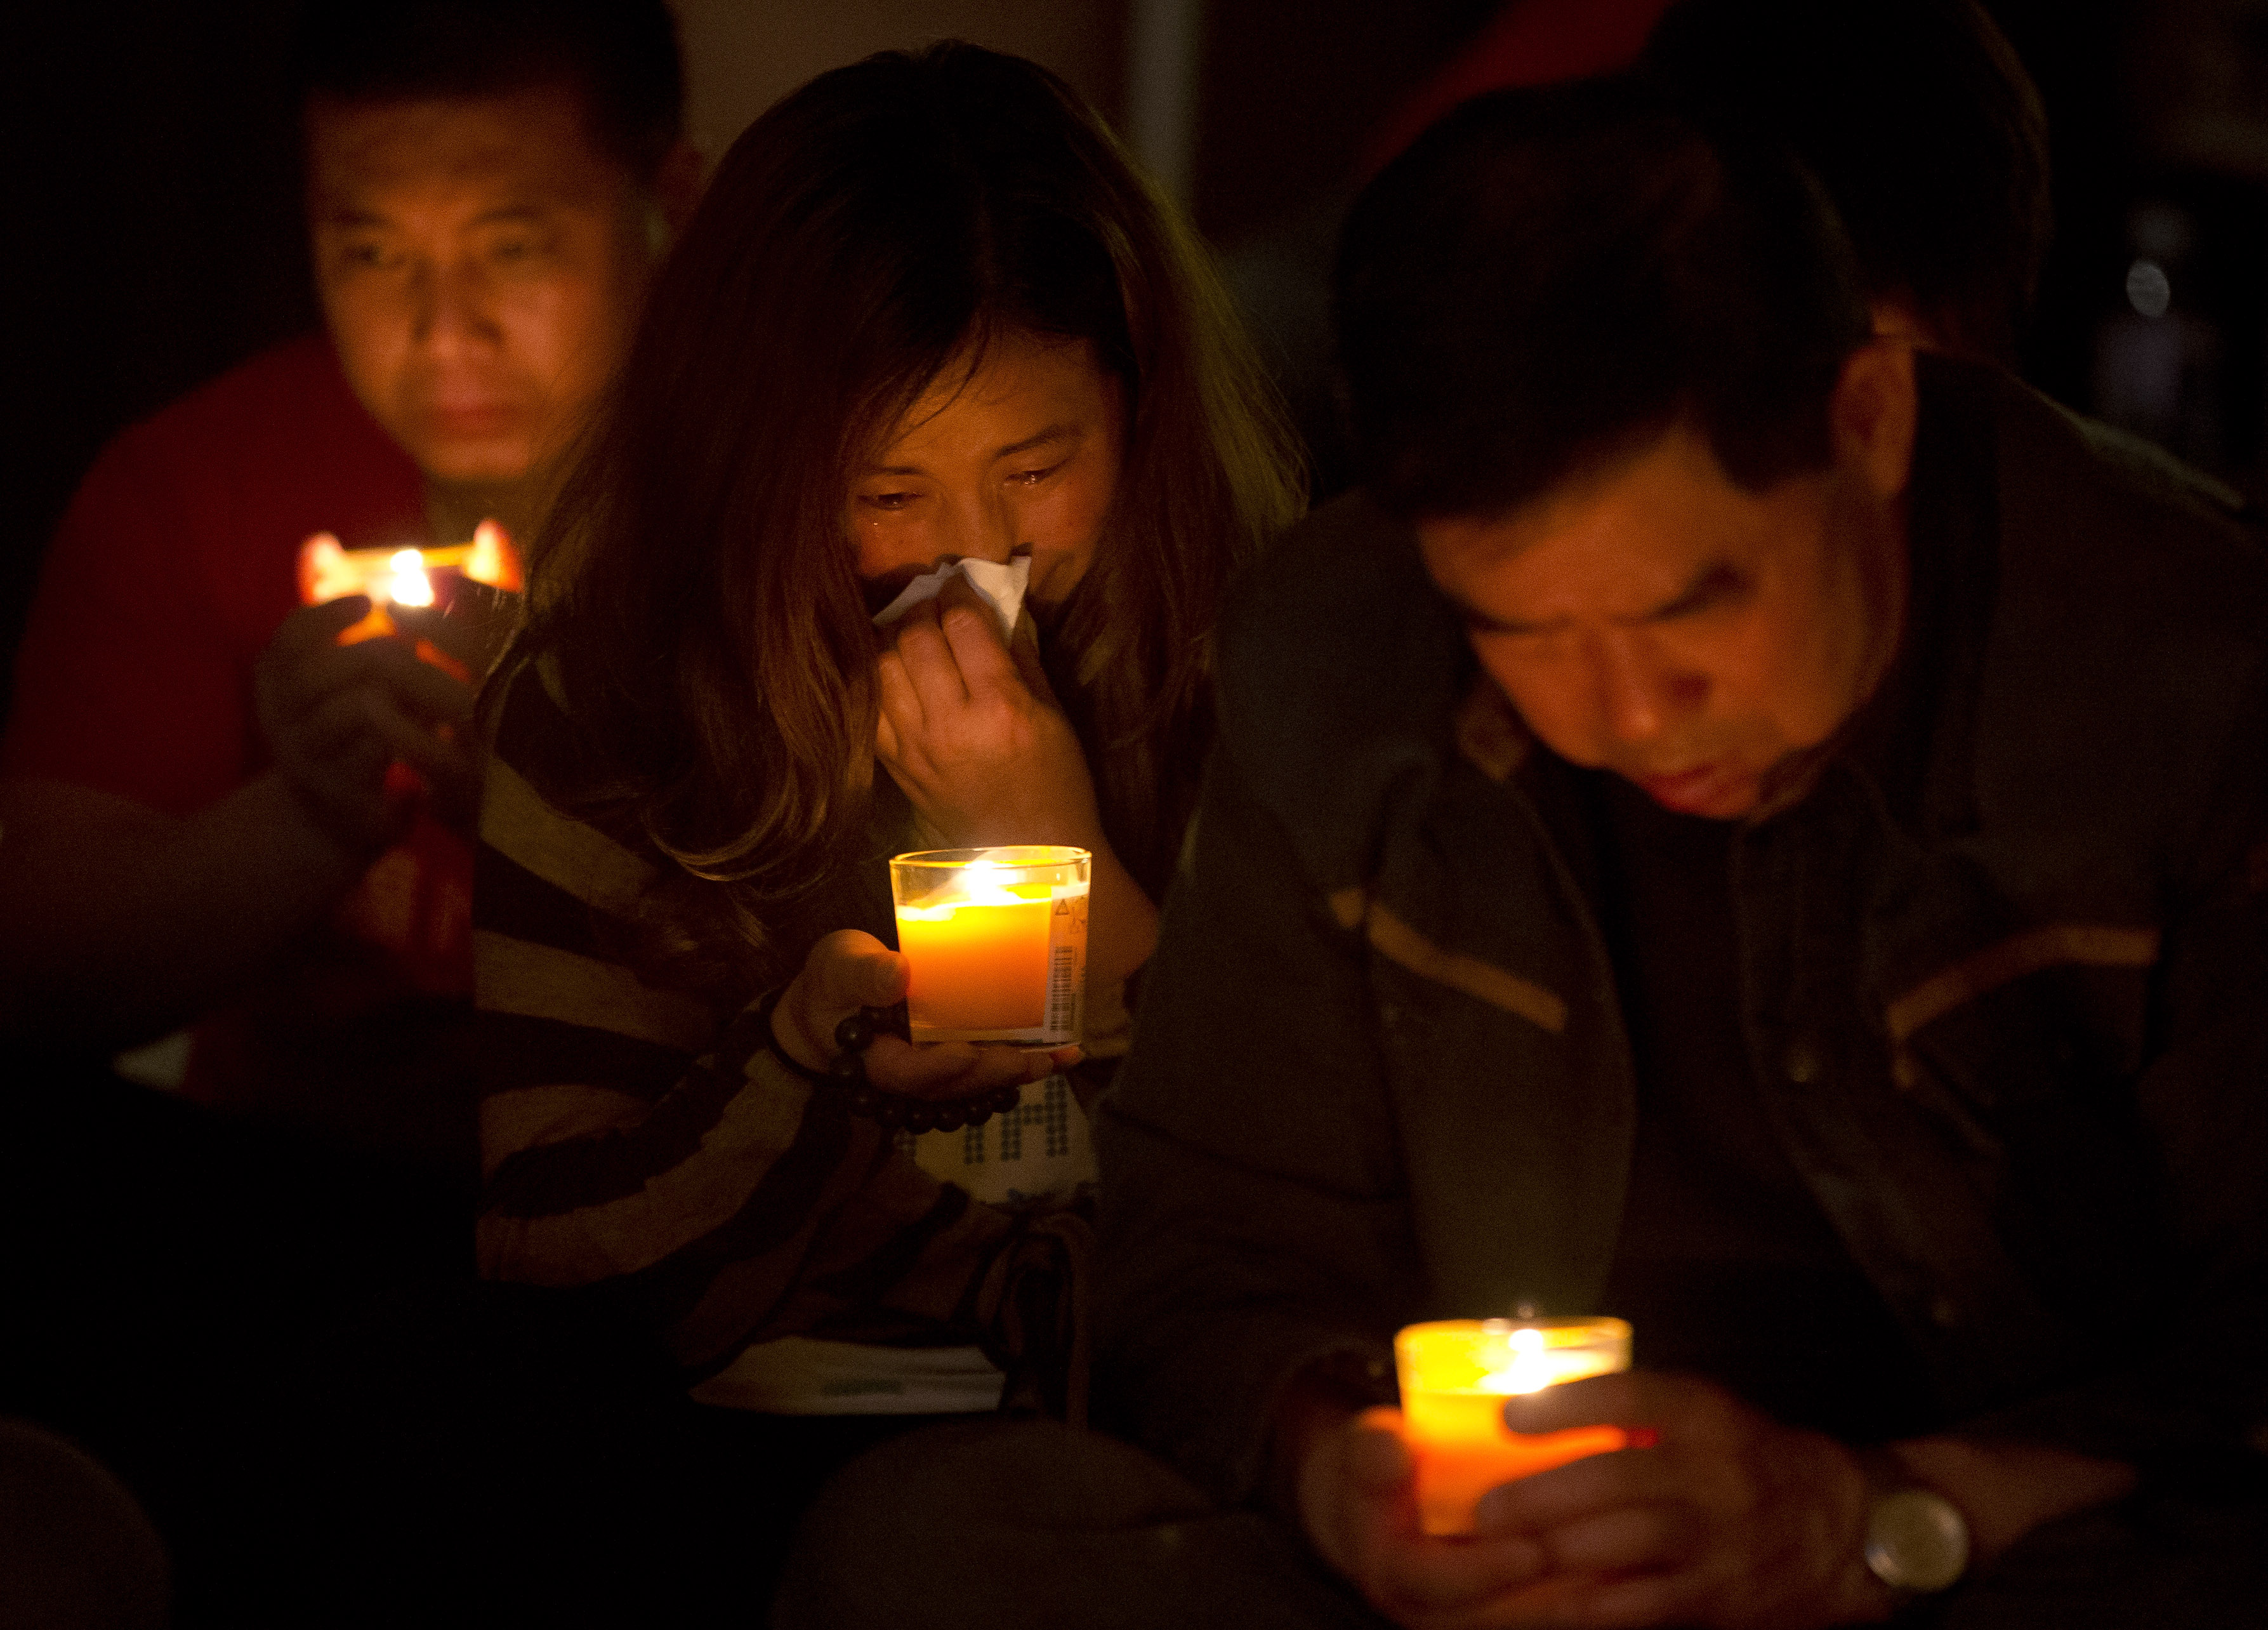 A woman cries as she and others attend a vigil for their loved ones, who were on the missing Malaysia Airlines Flight 370, at a hotel in Beijing on April 8, 2014